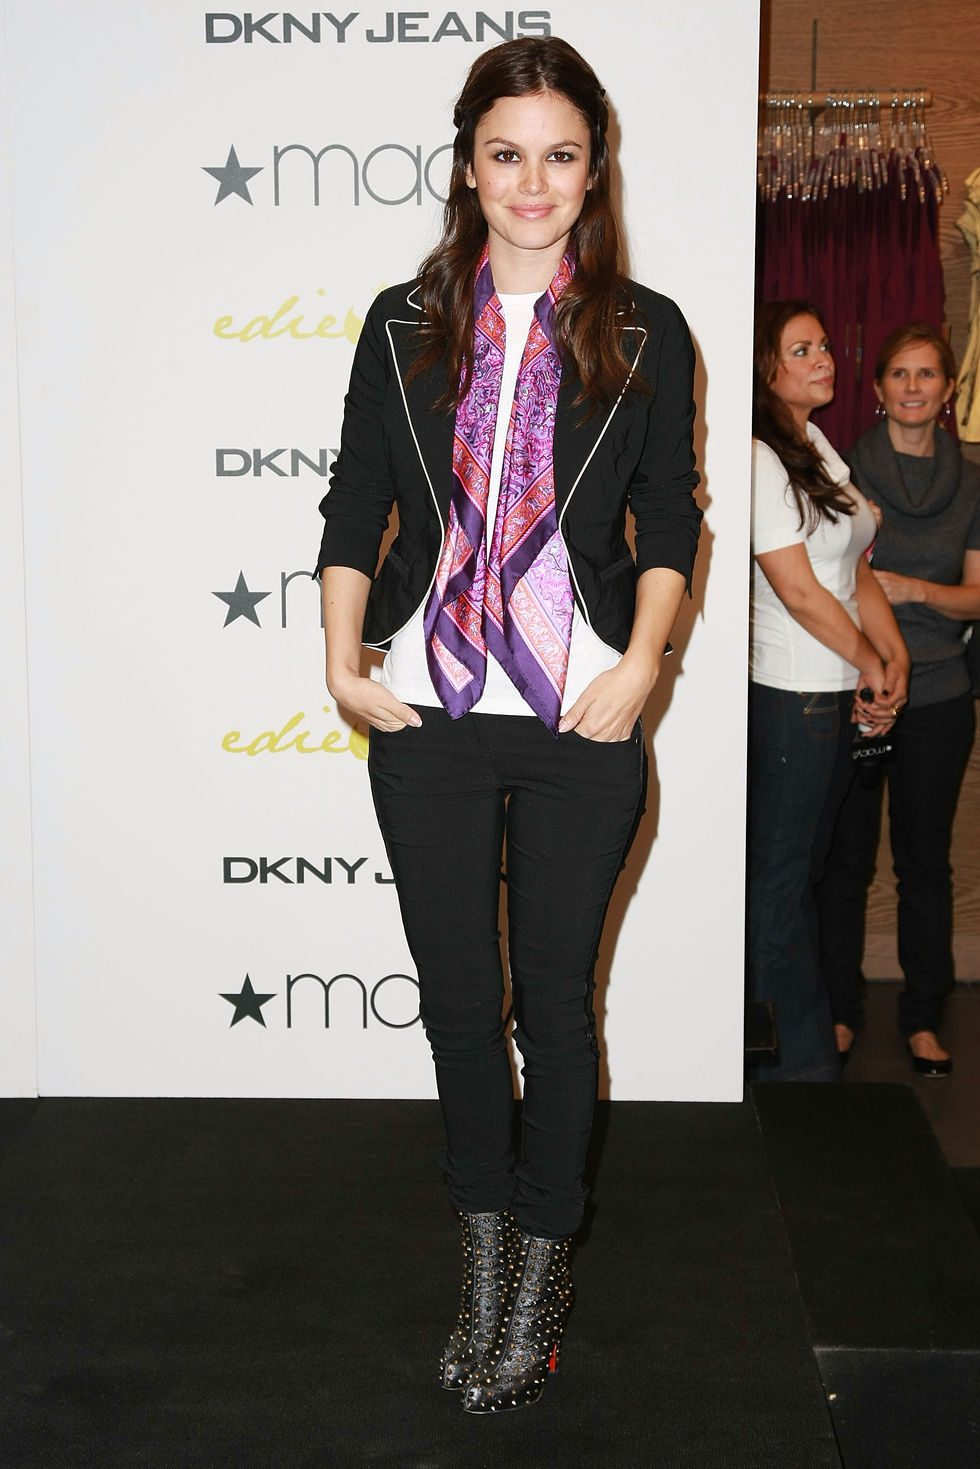 rachel-bilson-edie-rose-collection-launch-in-new-york-city-09